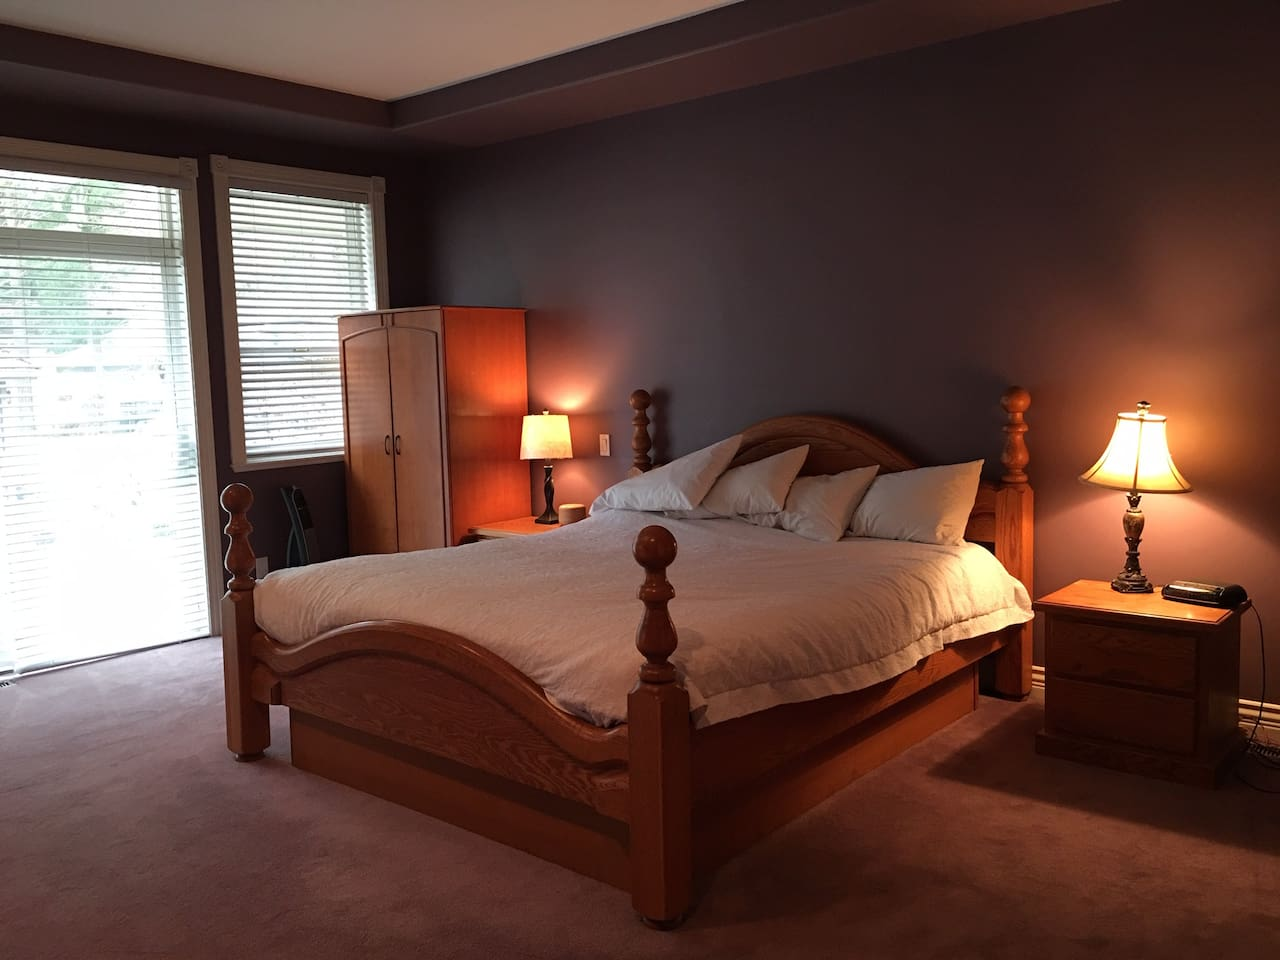 Master Suite (Approximatley 450 Sq), includes closet, TV, a full bathroom, Tub and Shower, and access to back yard.